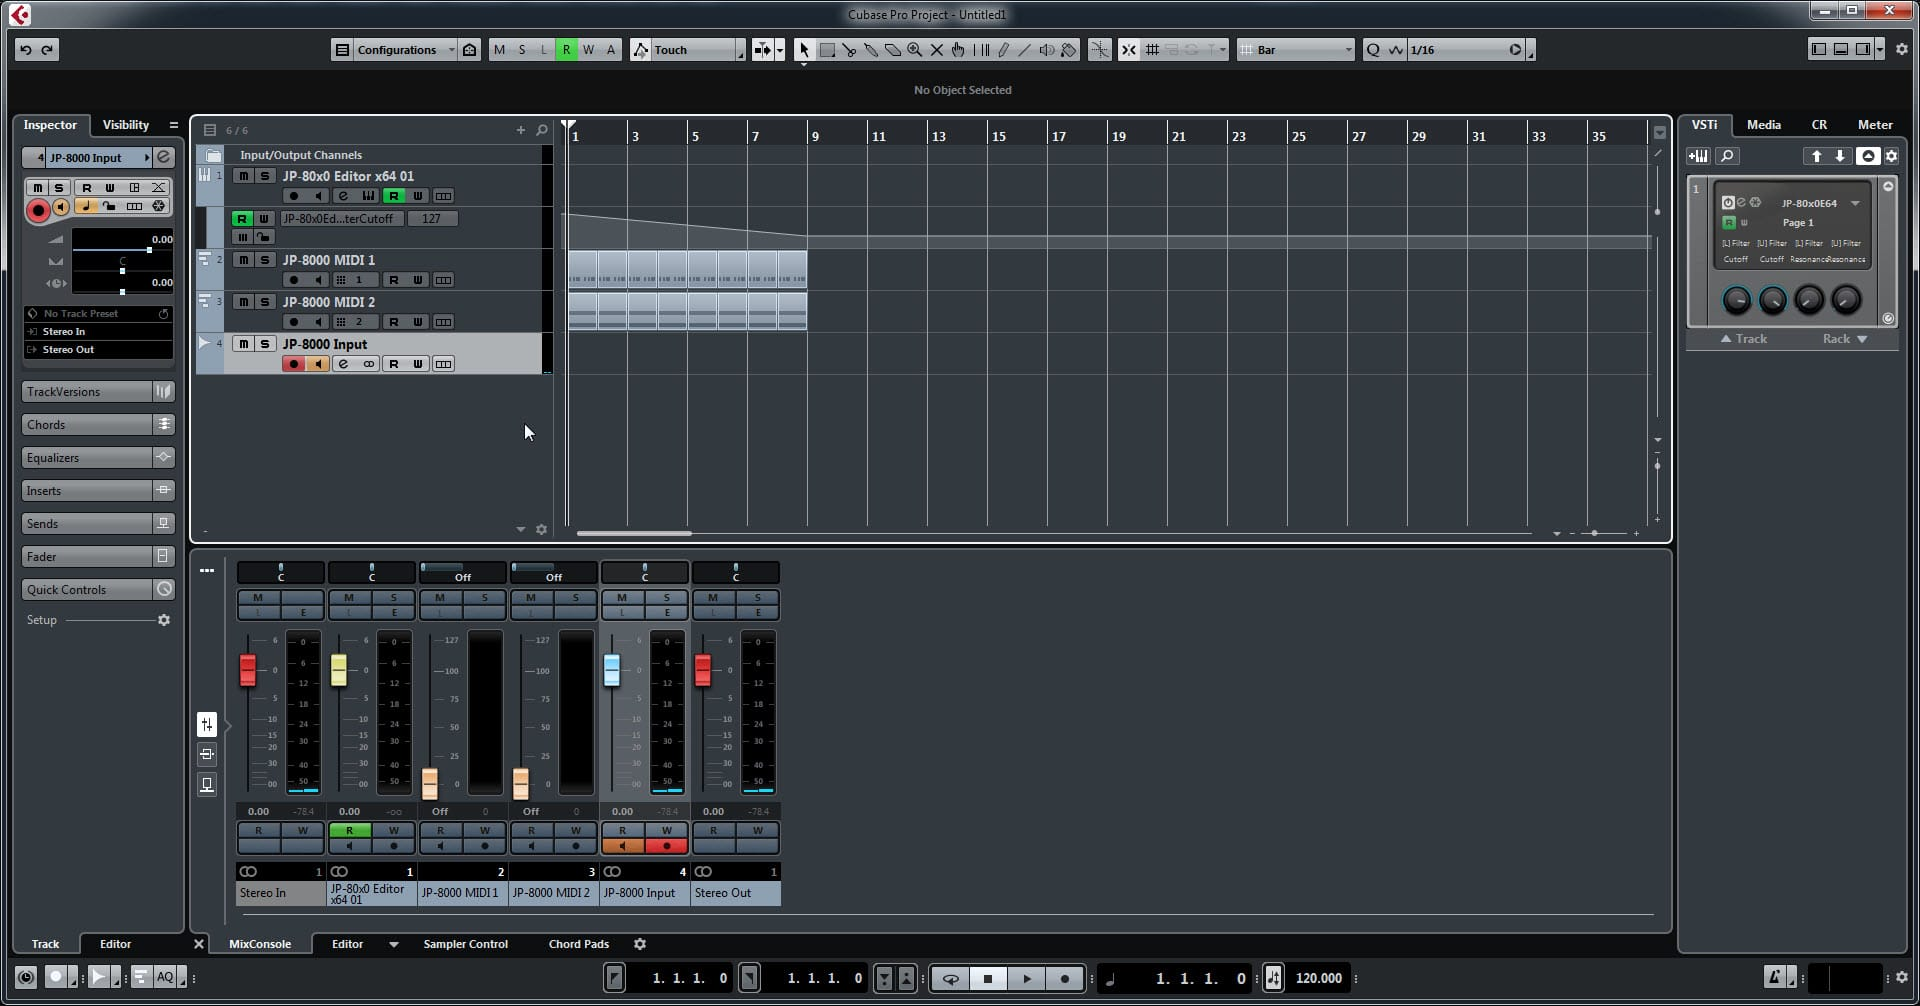 Steinberg Cubase Config - Everything Works like well Oiled Machine